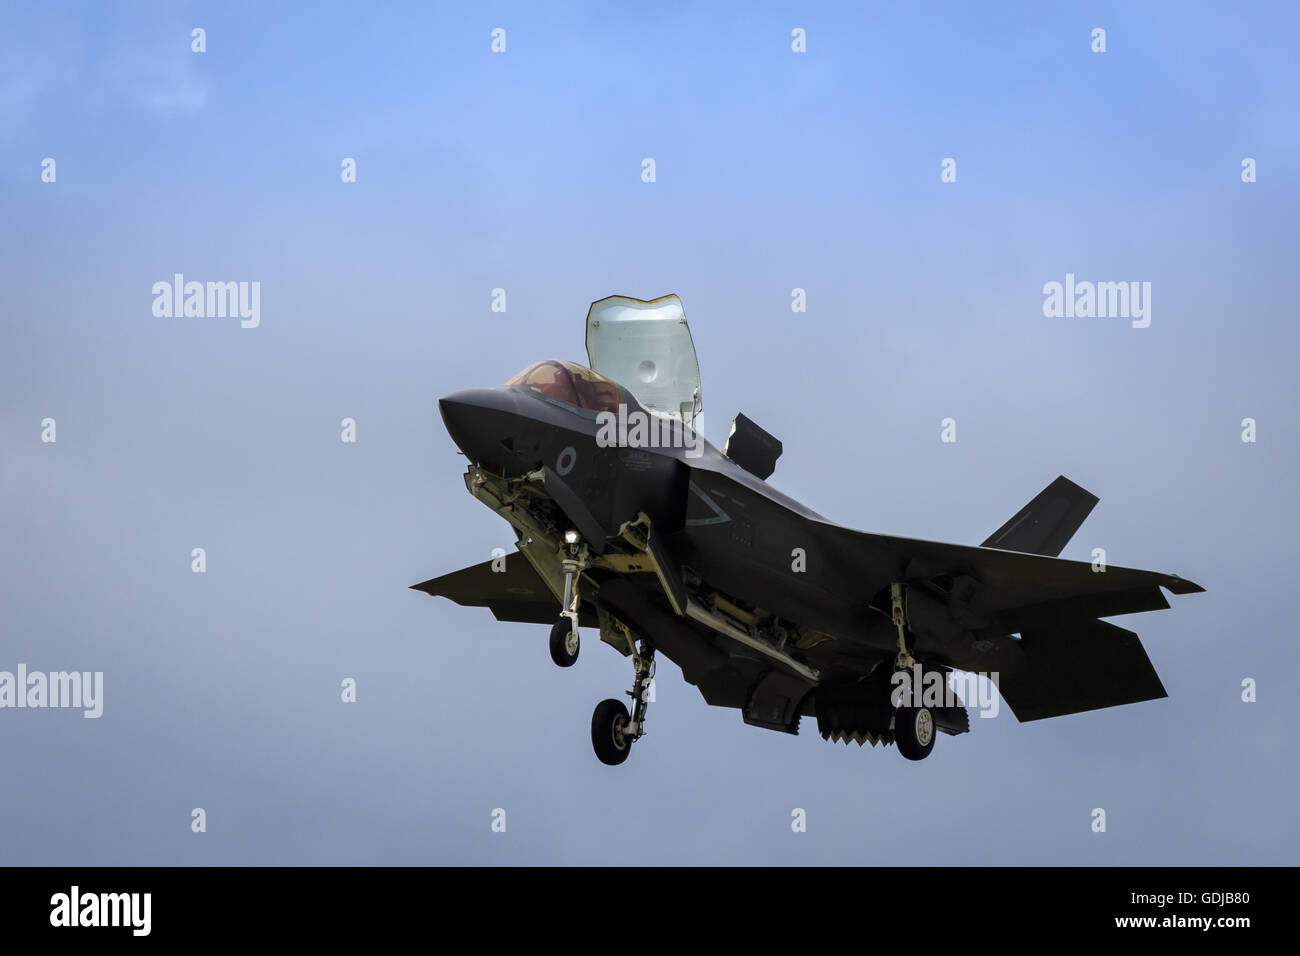 F35 Joint Strike Fighter in hover supersonic ]STOVL stealth jet - Stock Image